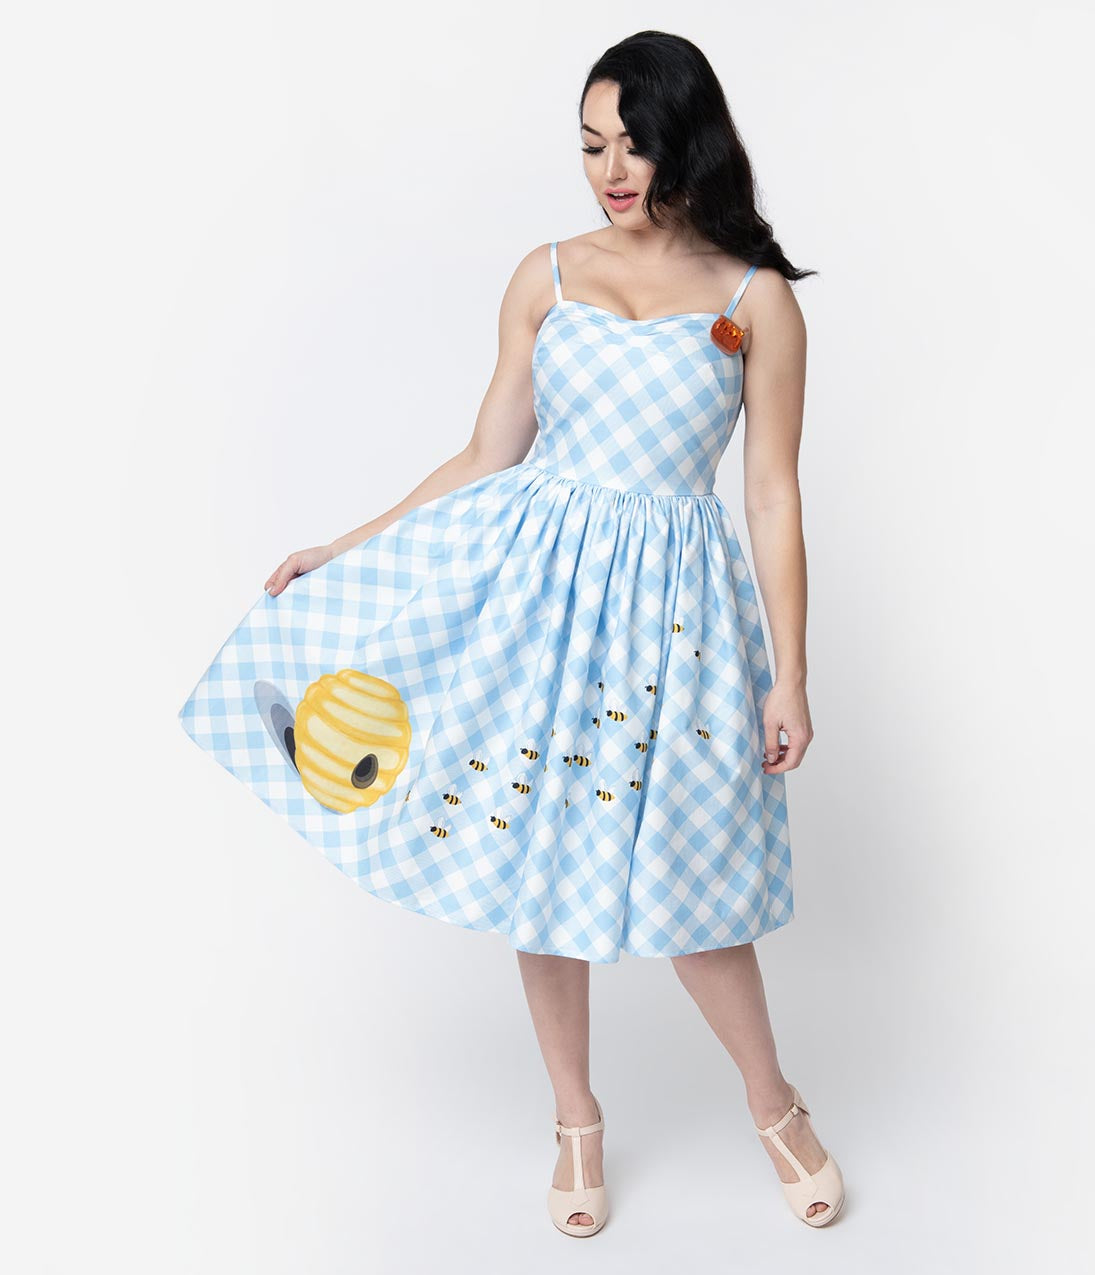 693bd6a3fc Unique Vintage 1950s Style Blue   White Gingham Bumblebee Darcy Swing Dress